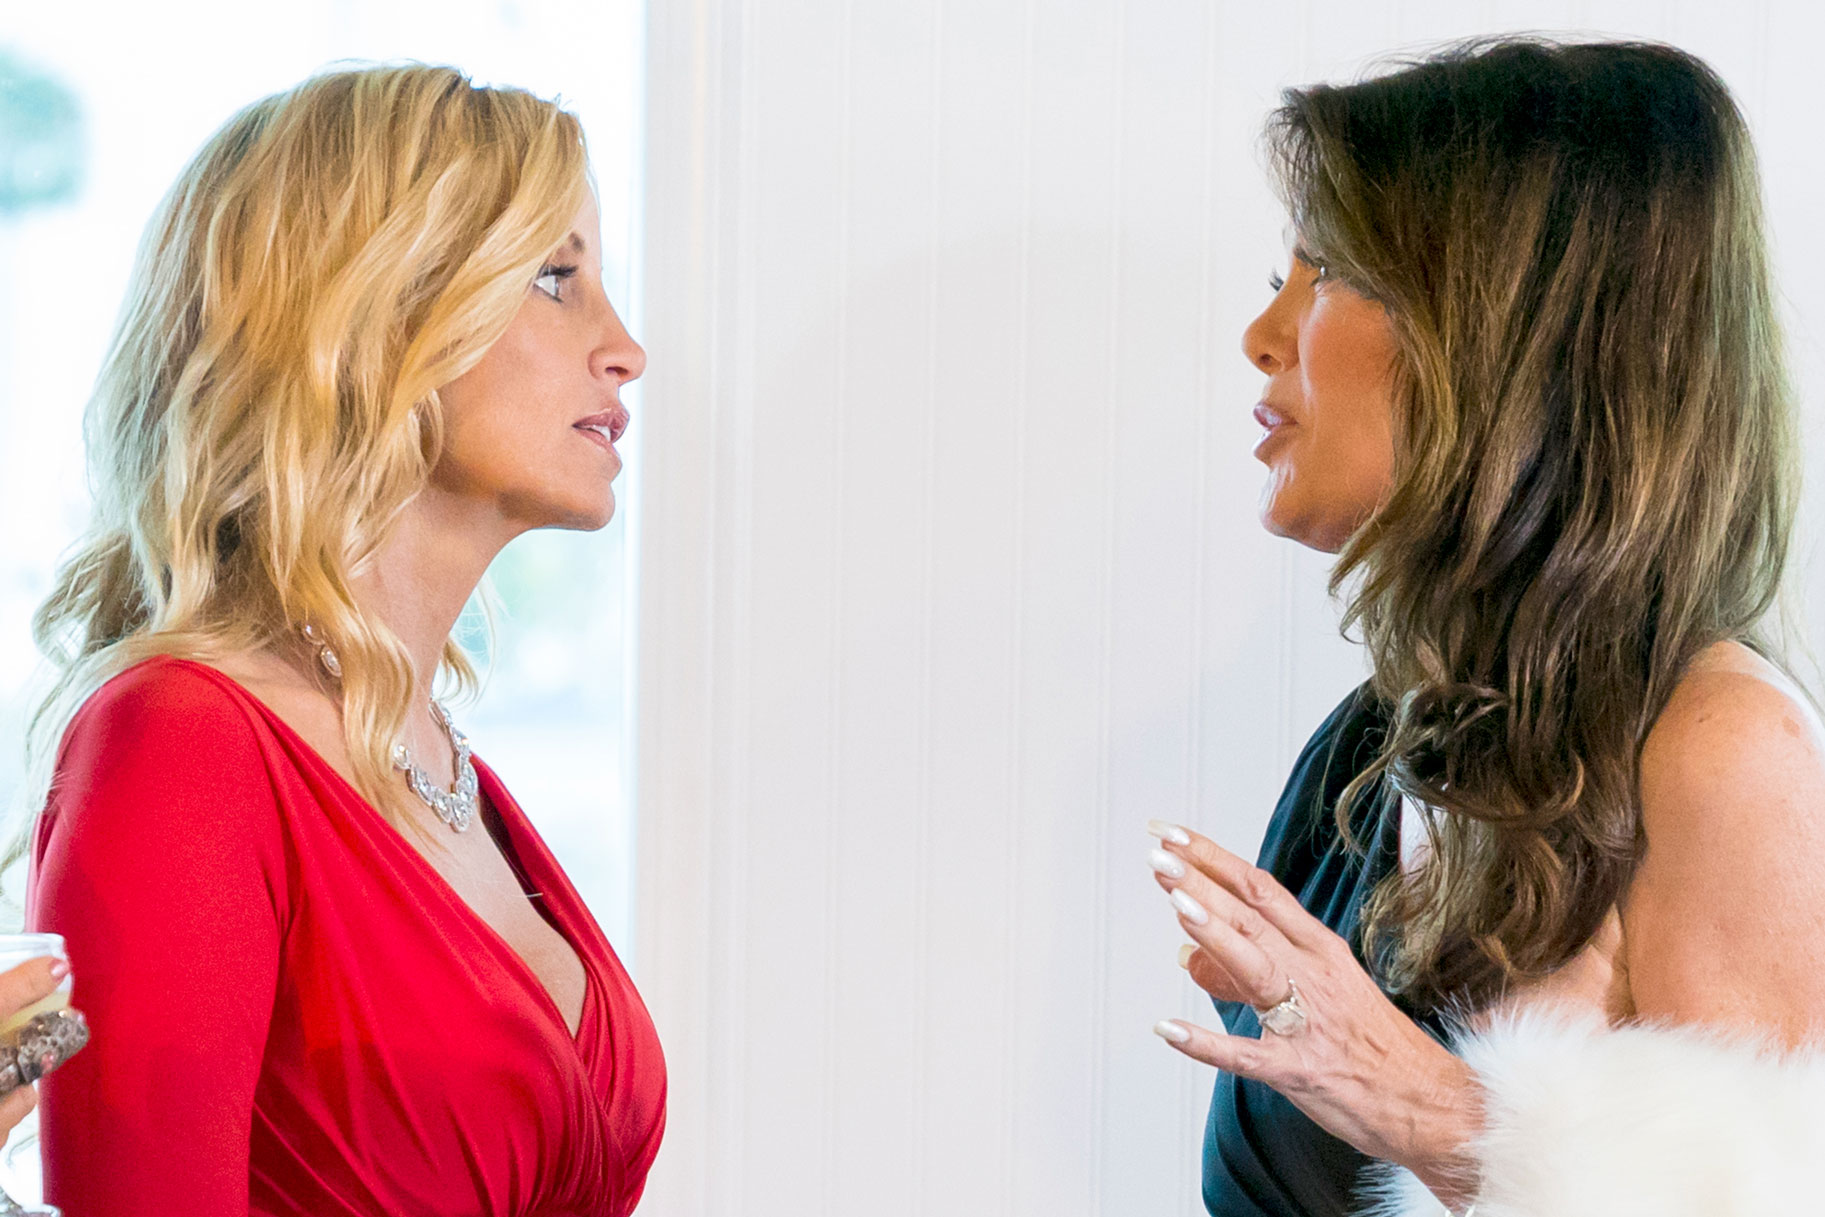 Lisa Vanderpump and Camille Grammer on The Real Housewives of Beverly Hills